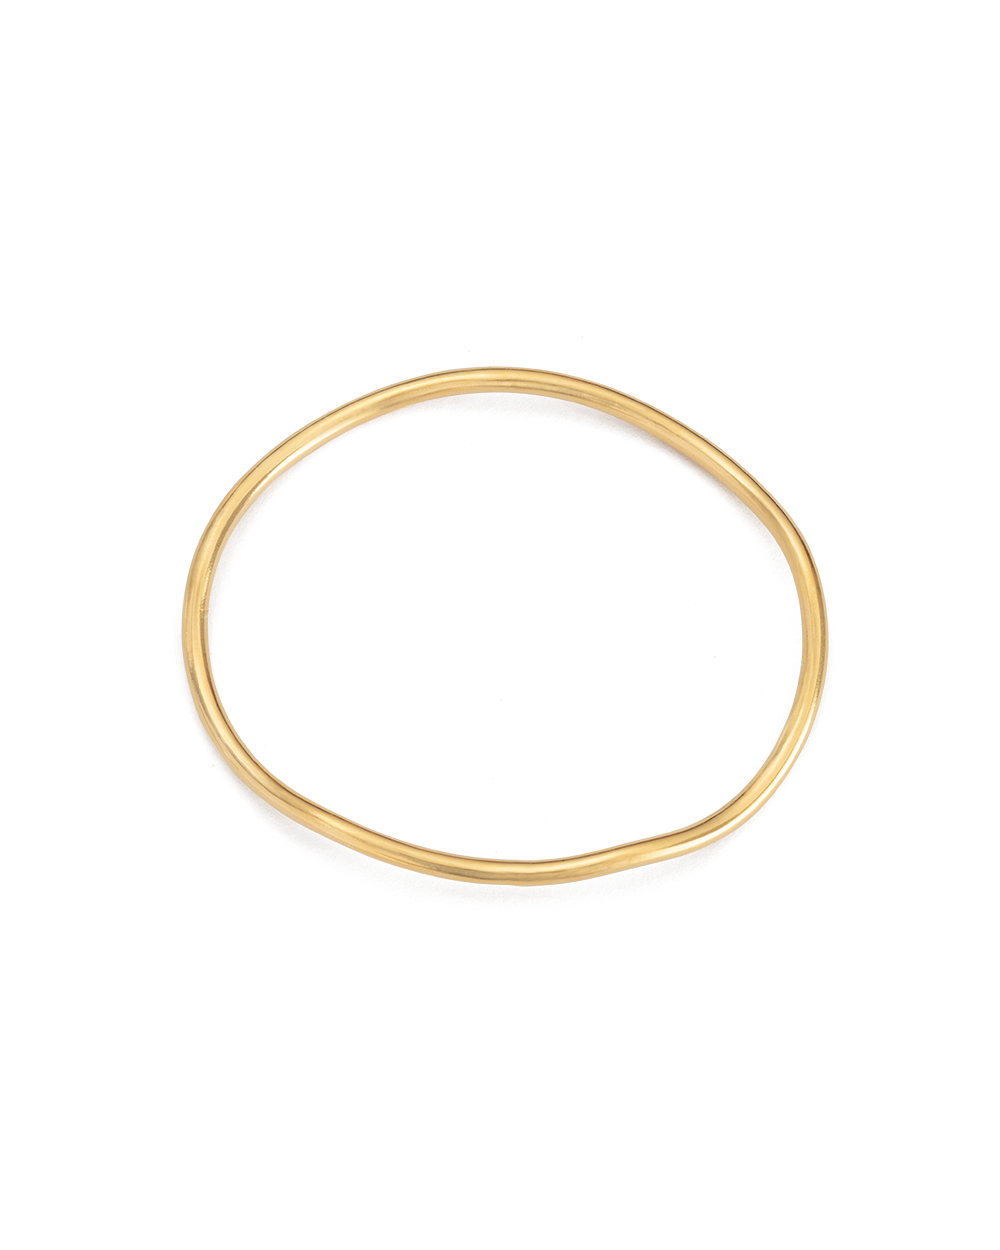 BOTANICA BANGLE (18K-GOLD-PLATED) - SIDE